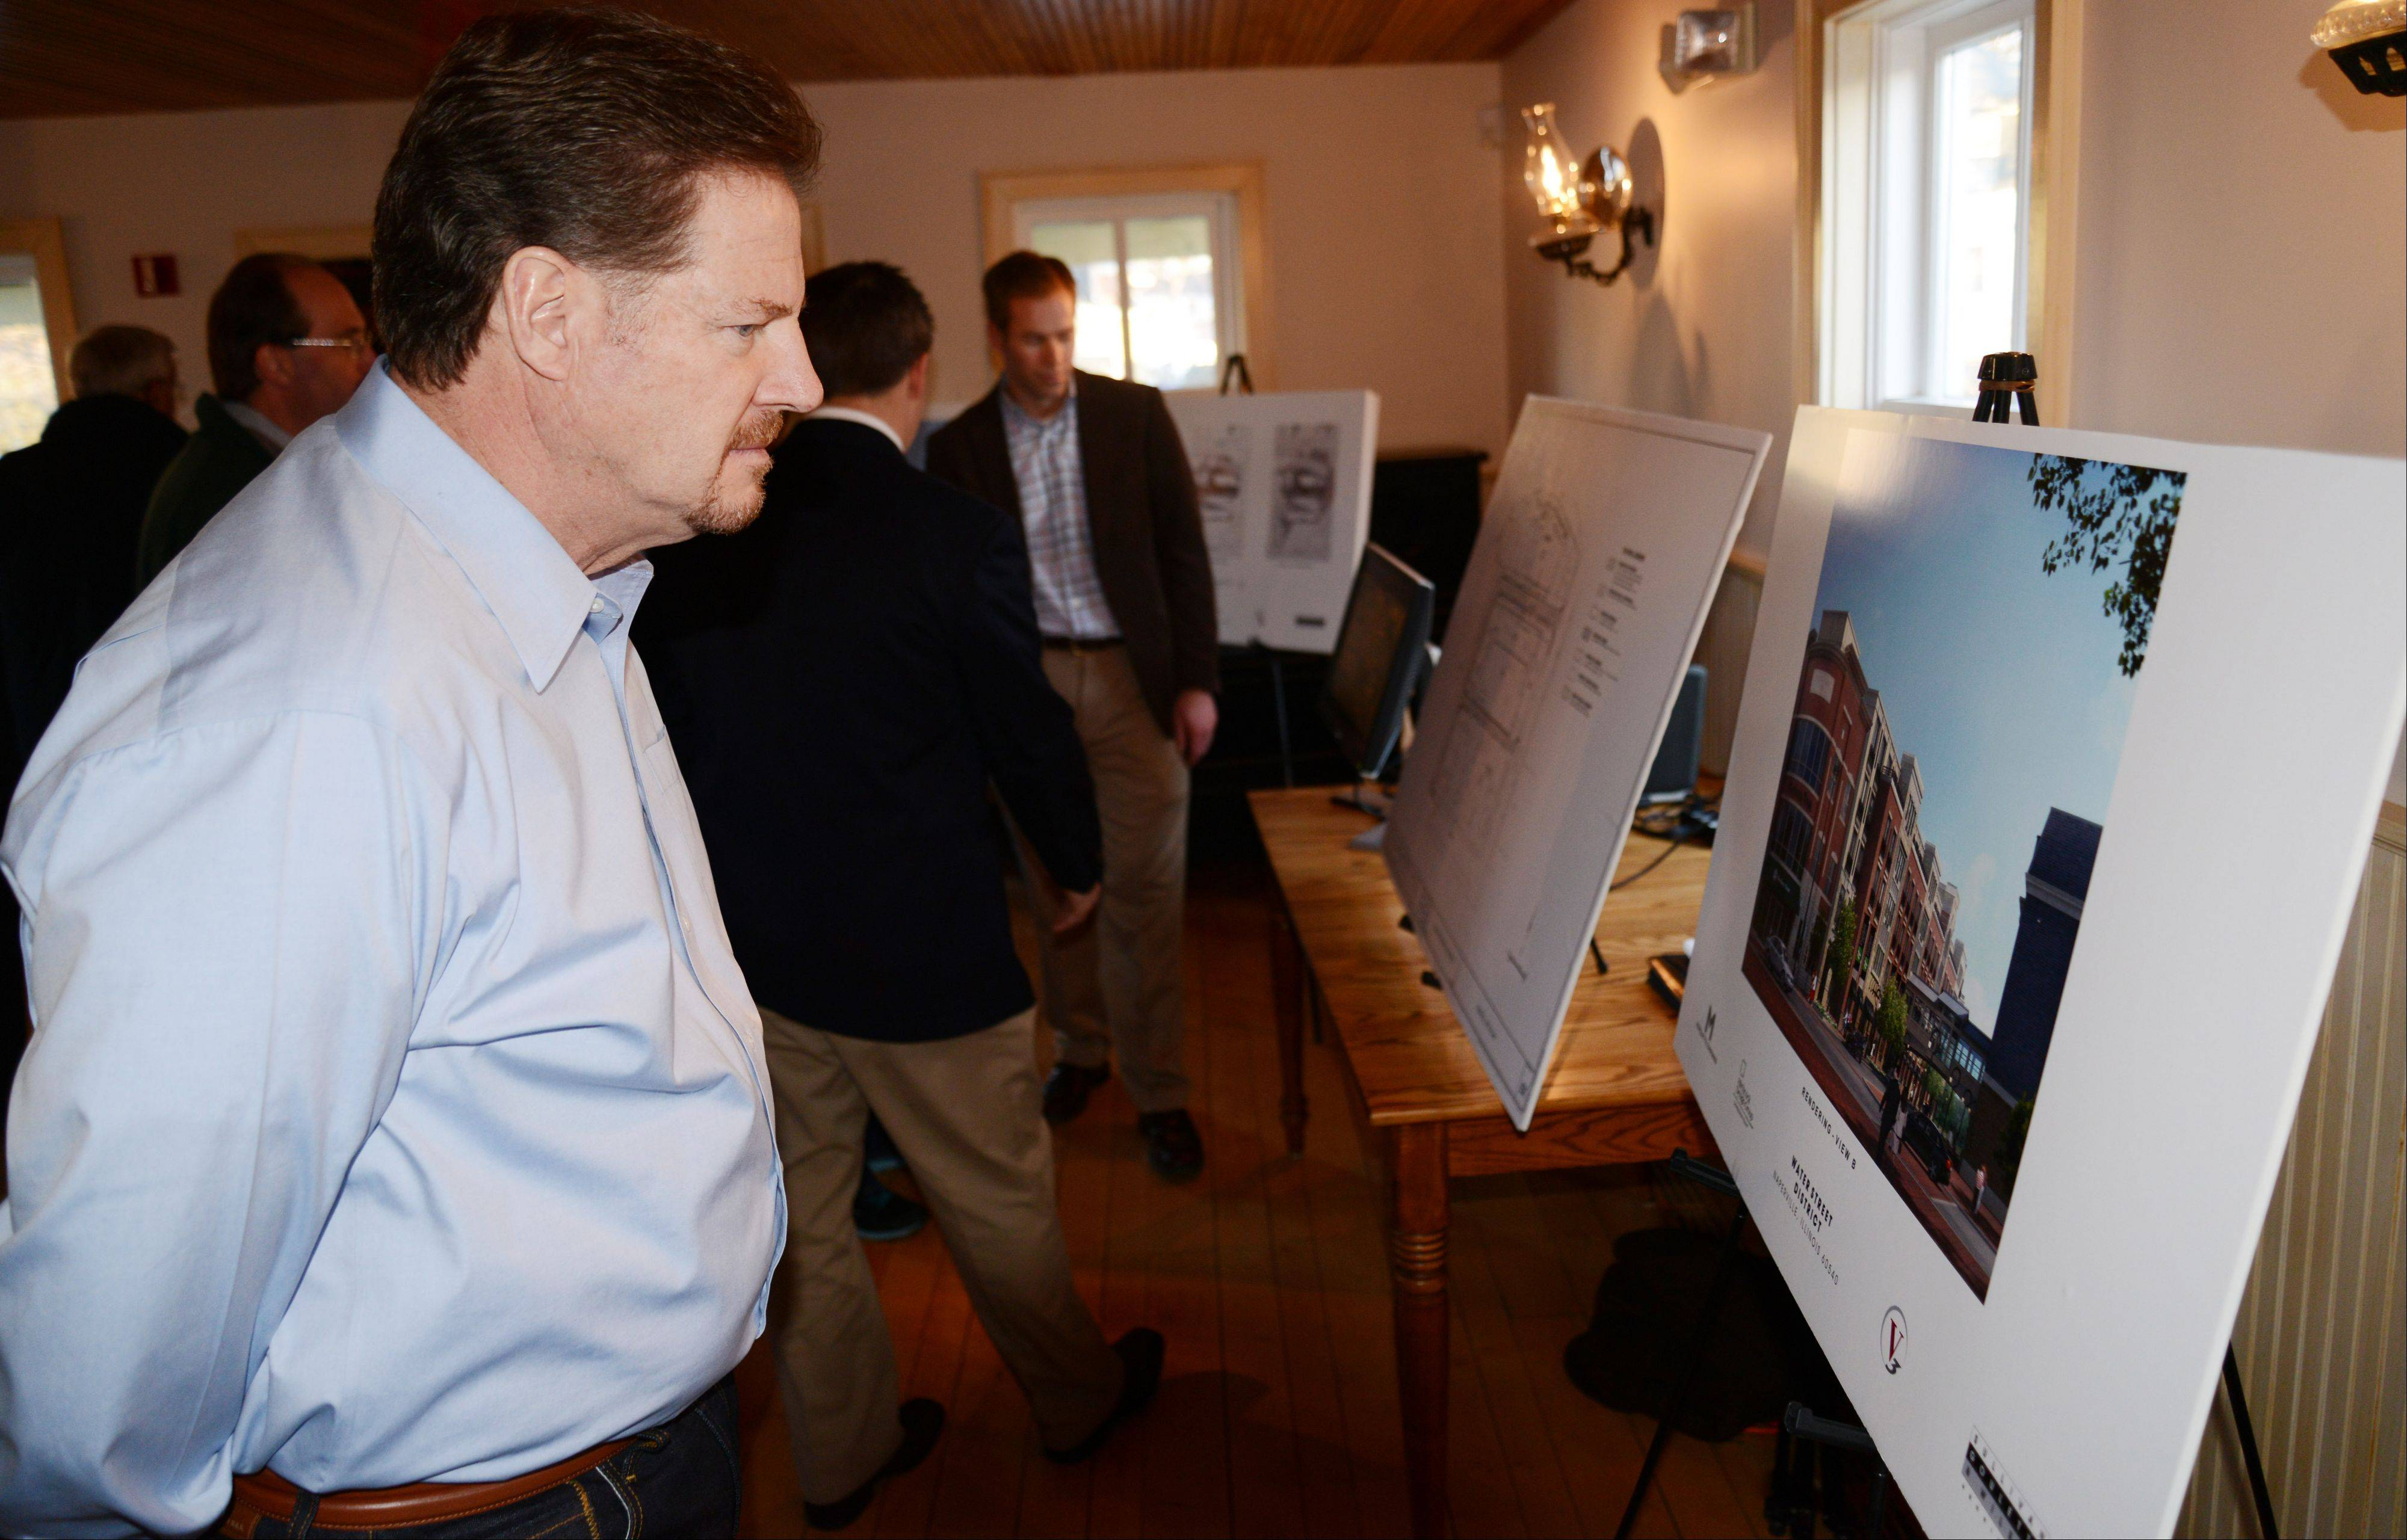 Bob Koch of Naperville was one of at least 120 people to attend during the first hour of an open house Thursday night featuring updated designs for the proposed Water Street development in downtown Naperville. Developer Marquette Cos. hosted the open house to gather public input before presenting the proposal to the city council Feb. 19.